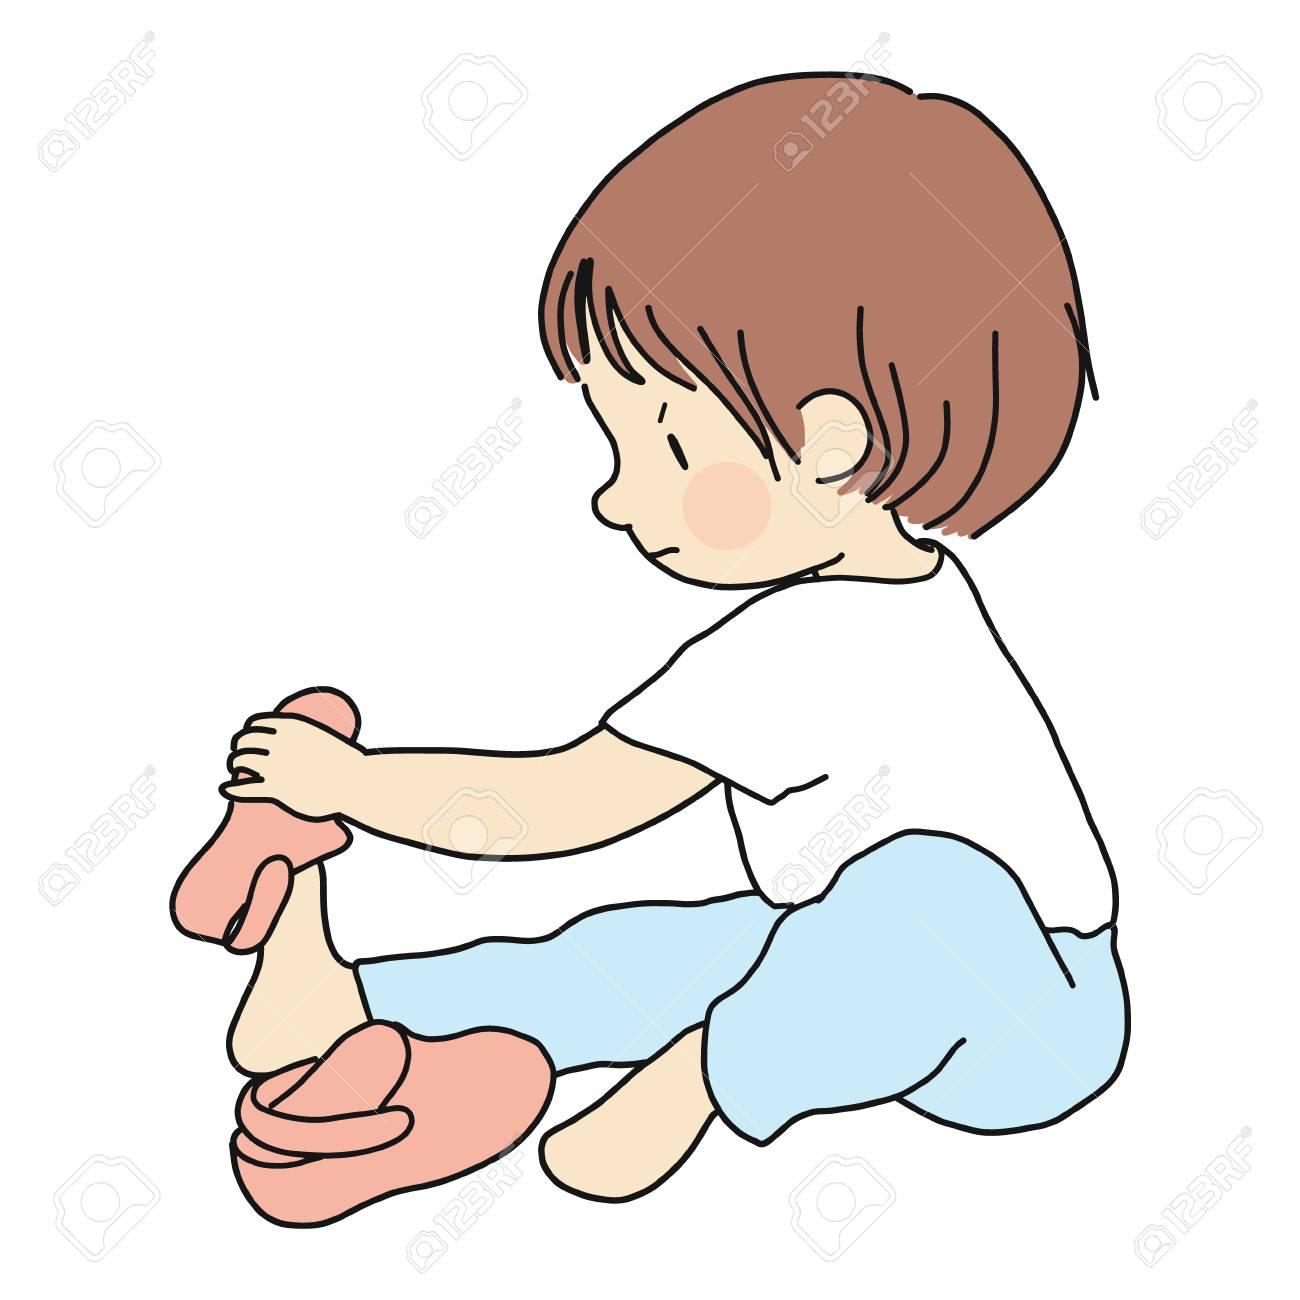 Vector illustration of little toddler sitting on floor and trying to put on his own shoes. Early childhood development, education, learning, dressing skill concept. Cartoon character drawing. - 107037490